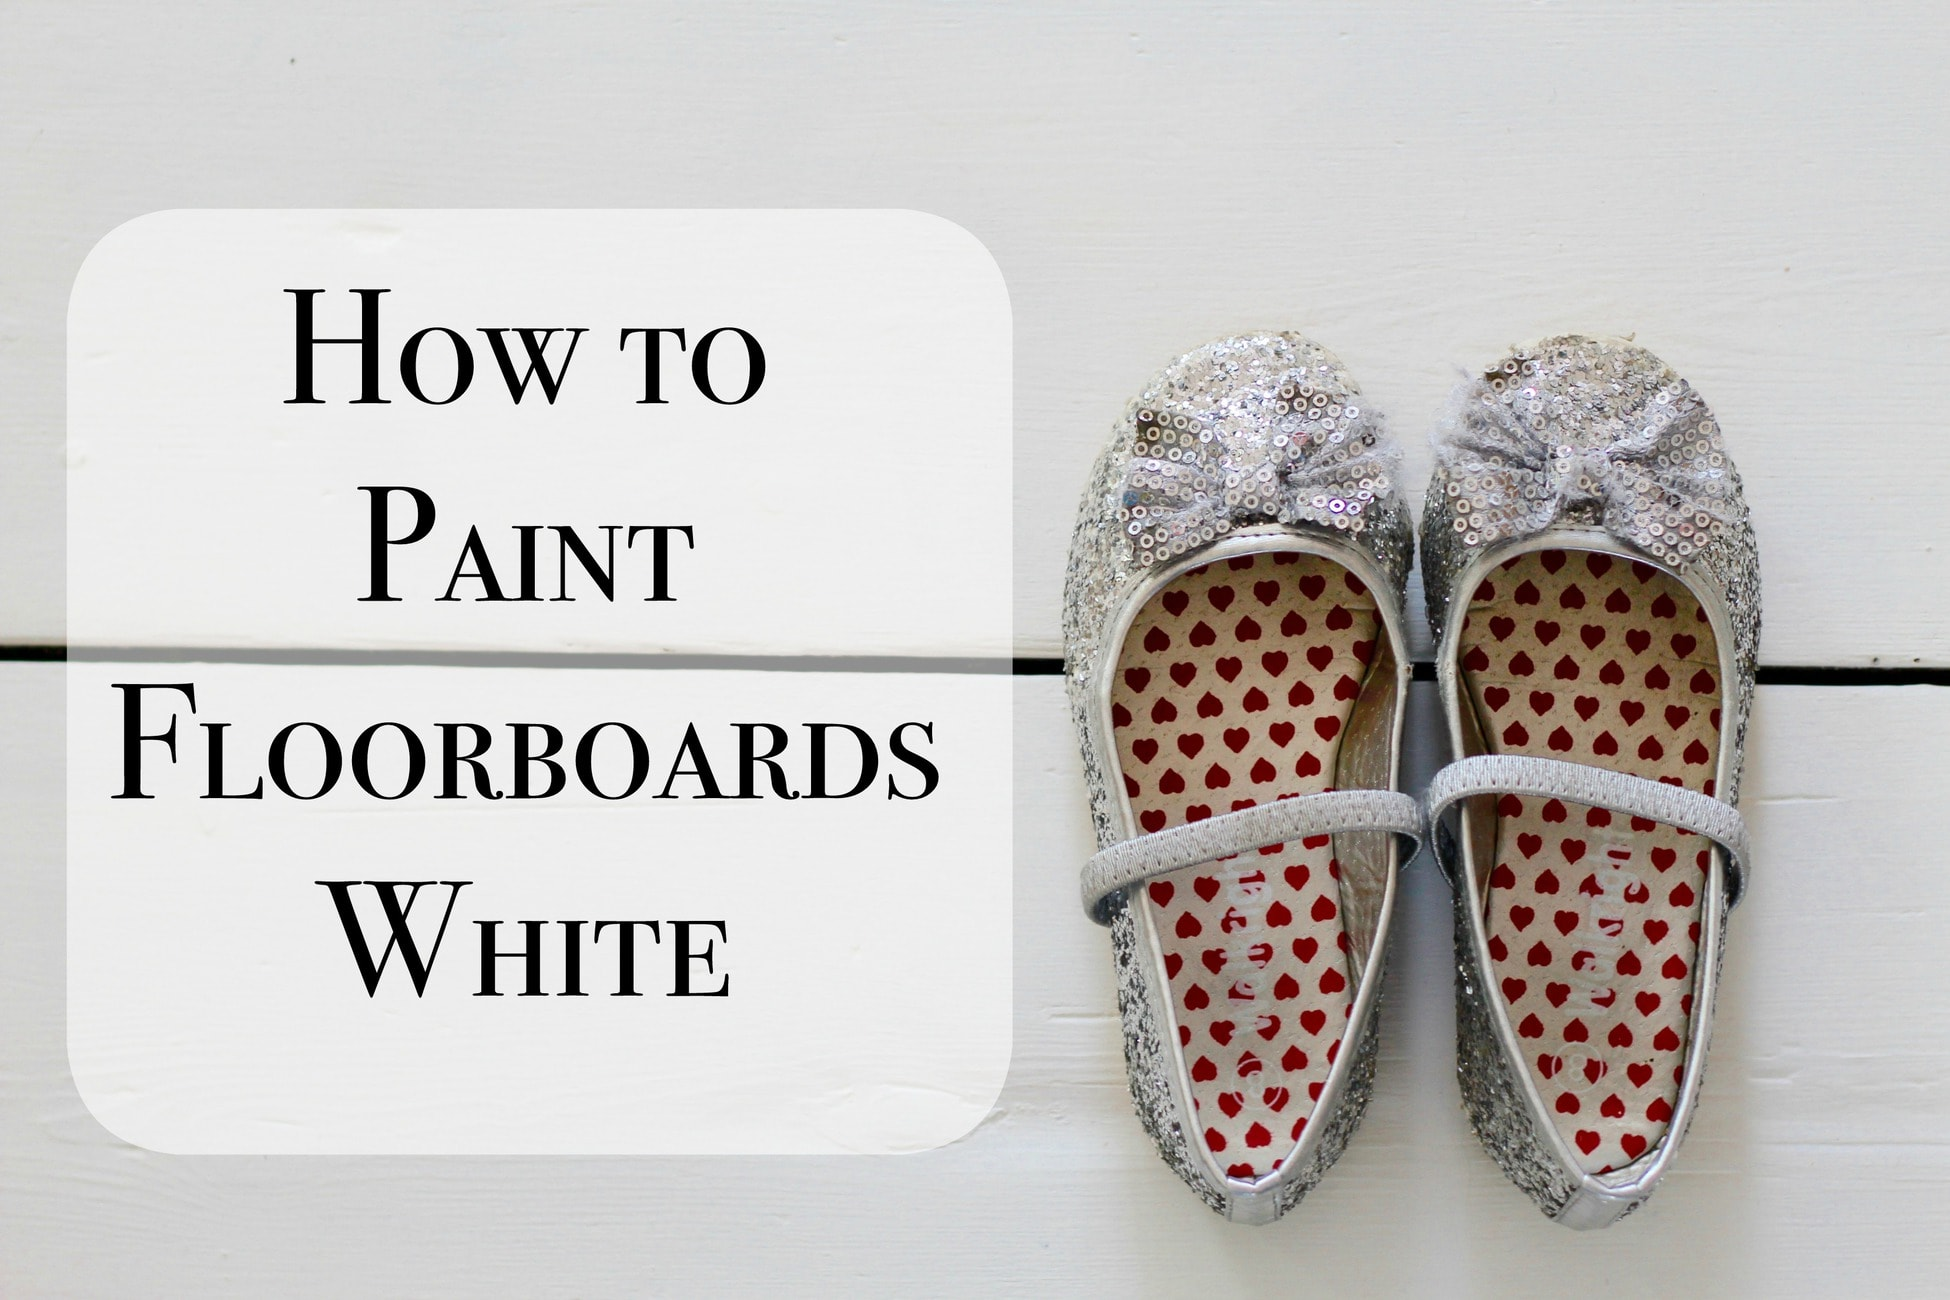 how to paint floorboards white with rust oleum we made this life. Black Bedroom Furniture Sets. Home Design Ideas